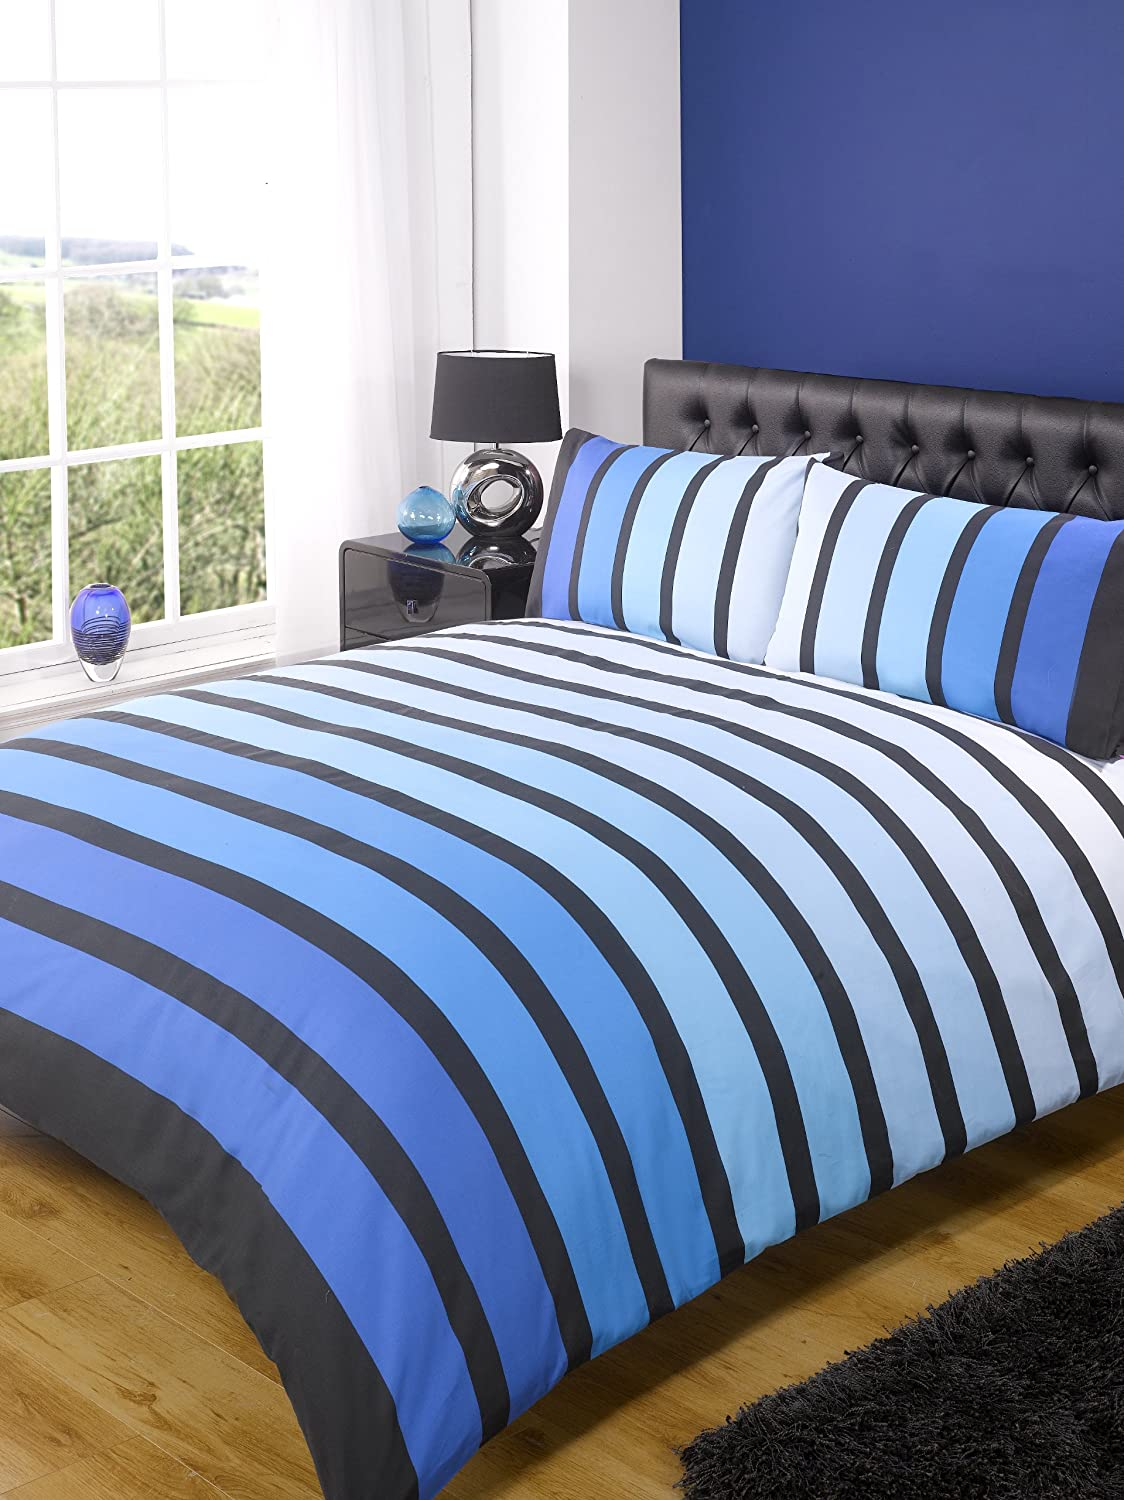 soho blue stripe duvet cover quilt bedding set blue double by rapport amazoncouk kitchen u0026 home